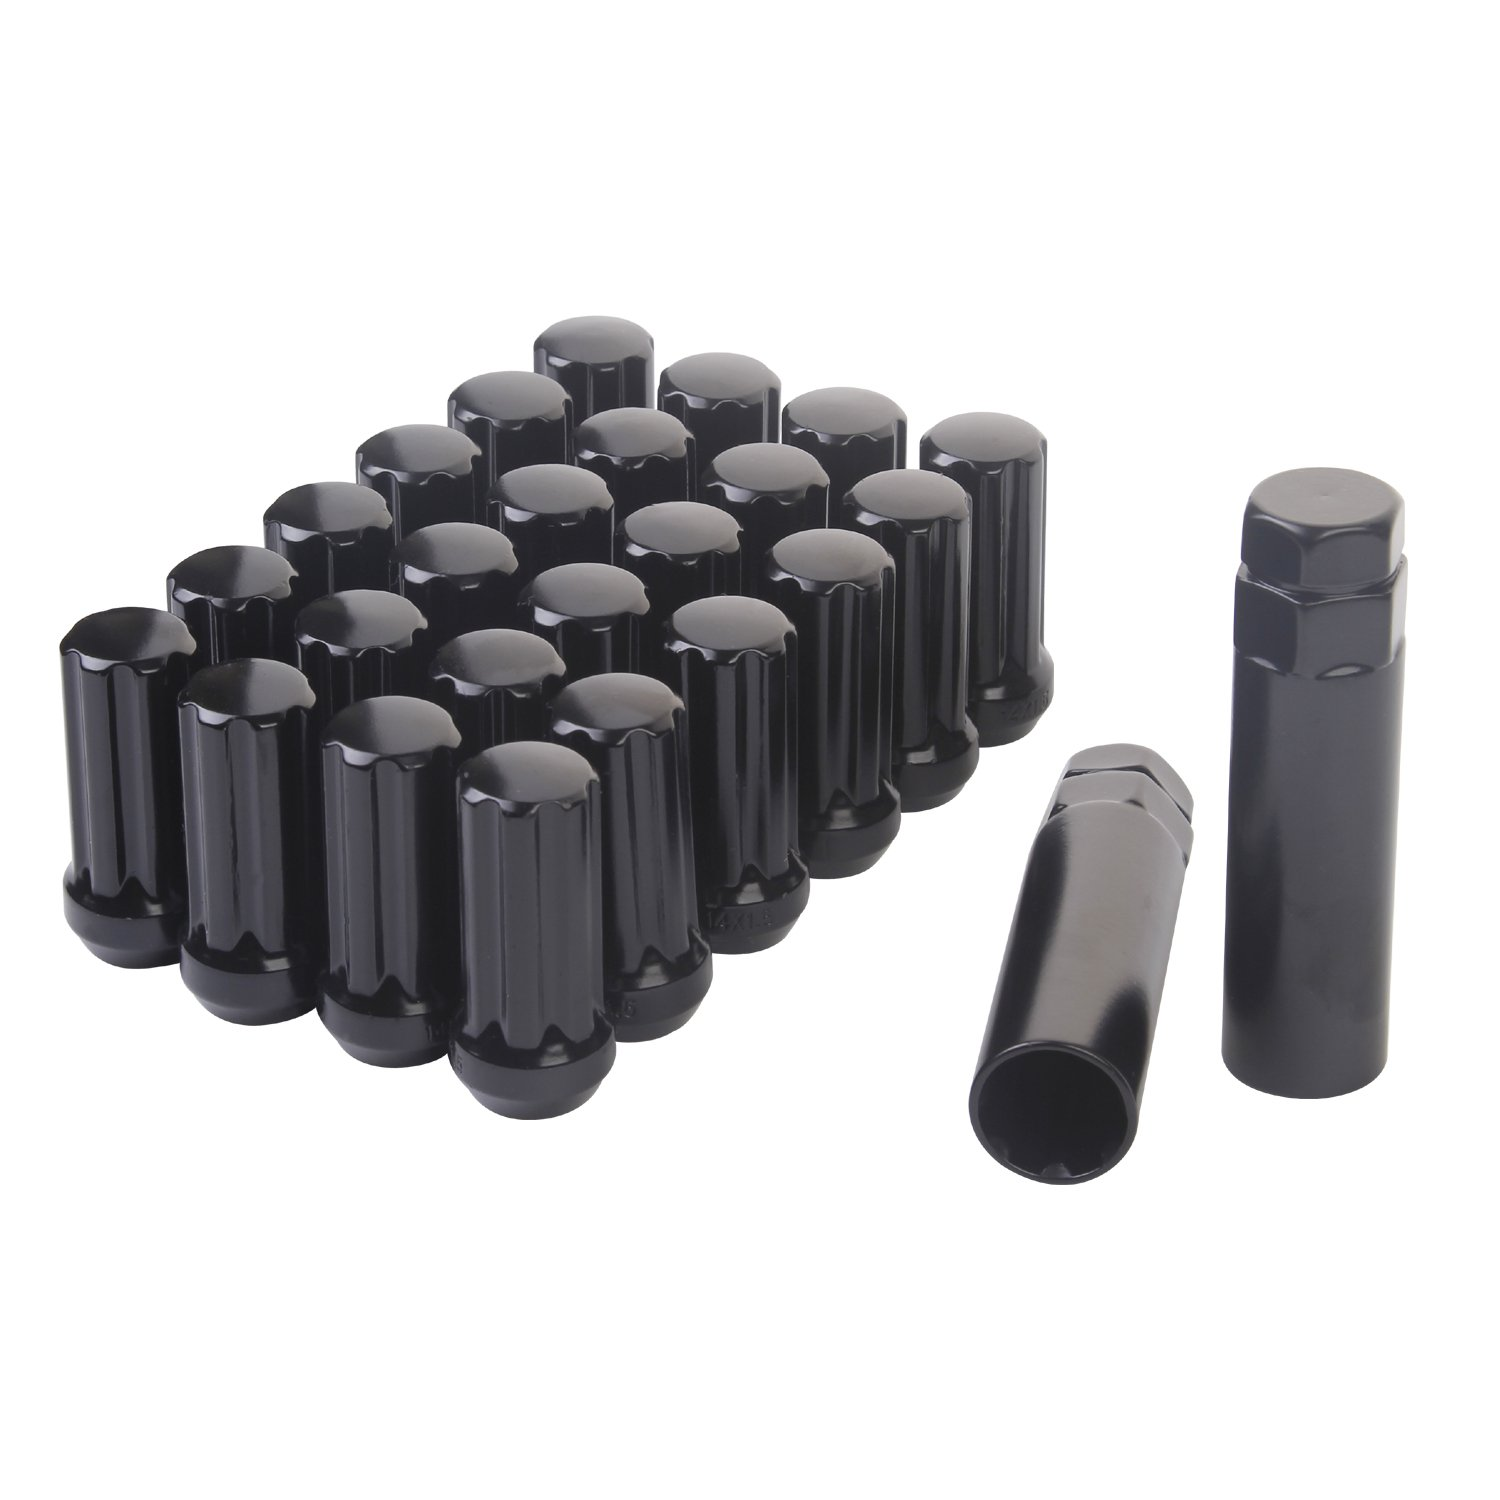 HanAuto Black Lug Nuts with 2 KEY (14mm x 1.5 Thread Size) - Pack of 24 Wheel Lug nuts, 75114K242